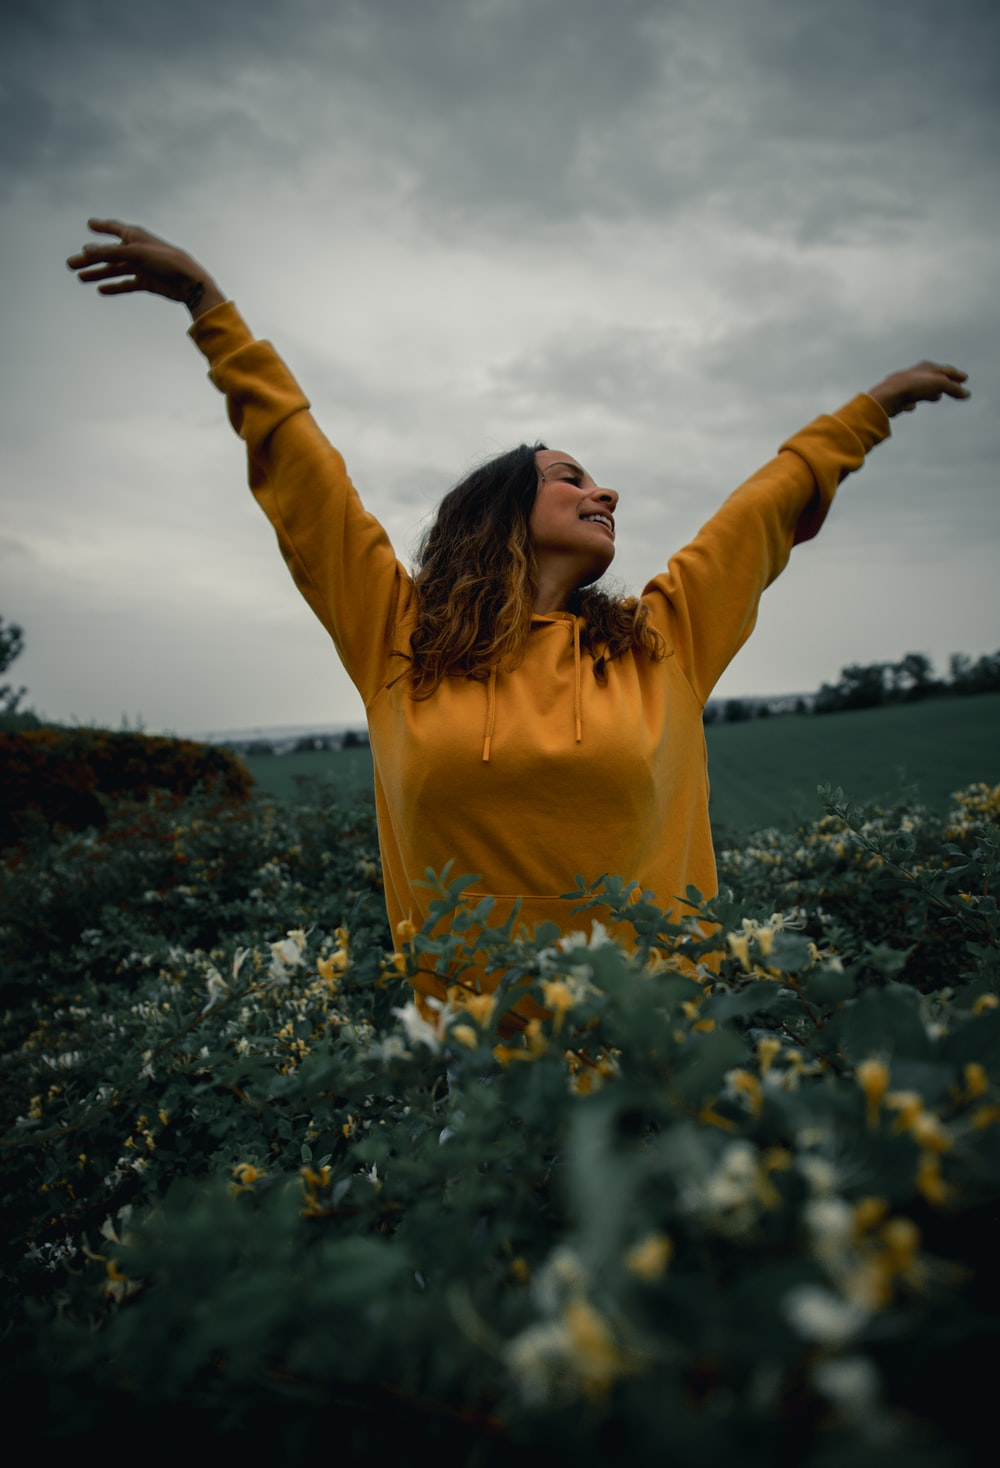 woman in yellow long sleeve shirt standing on flower field during daytime